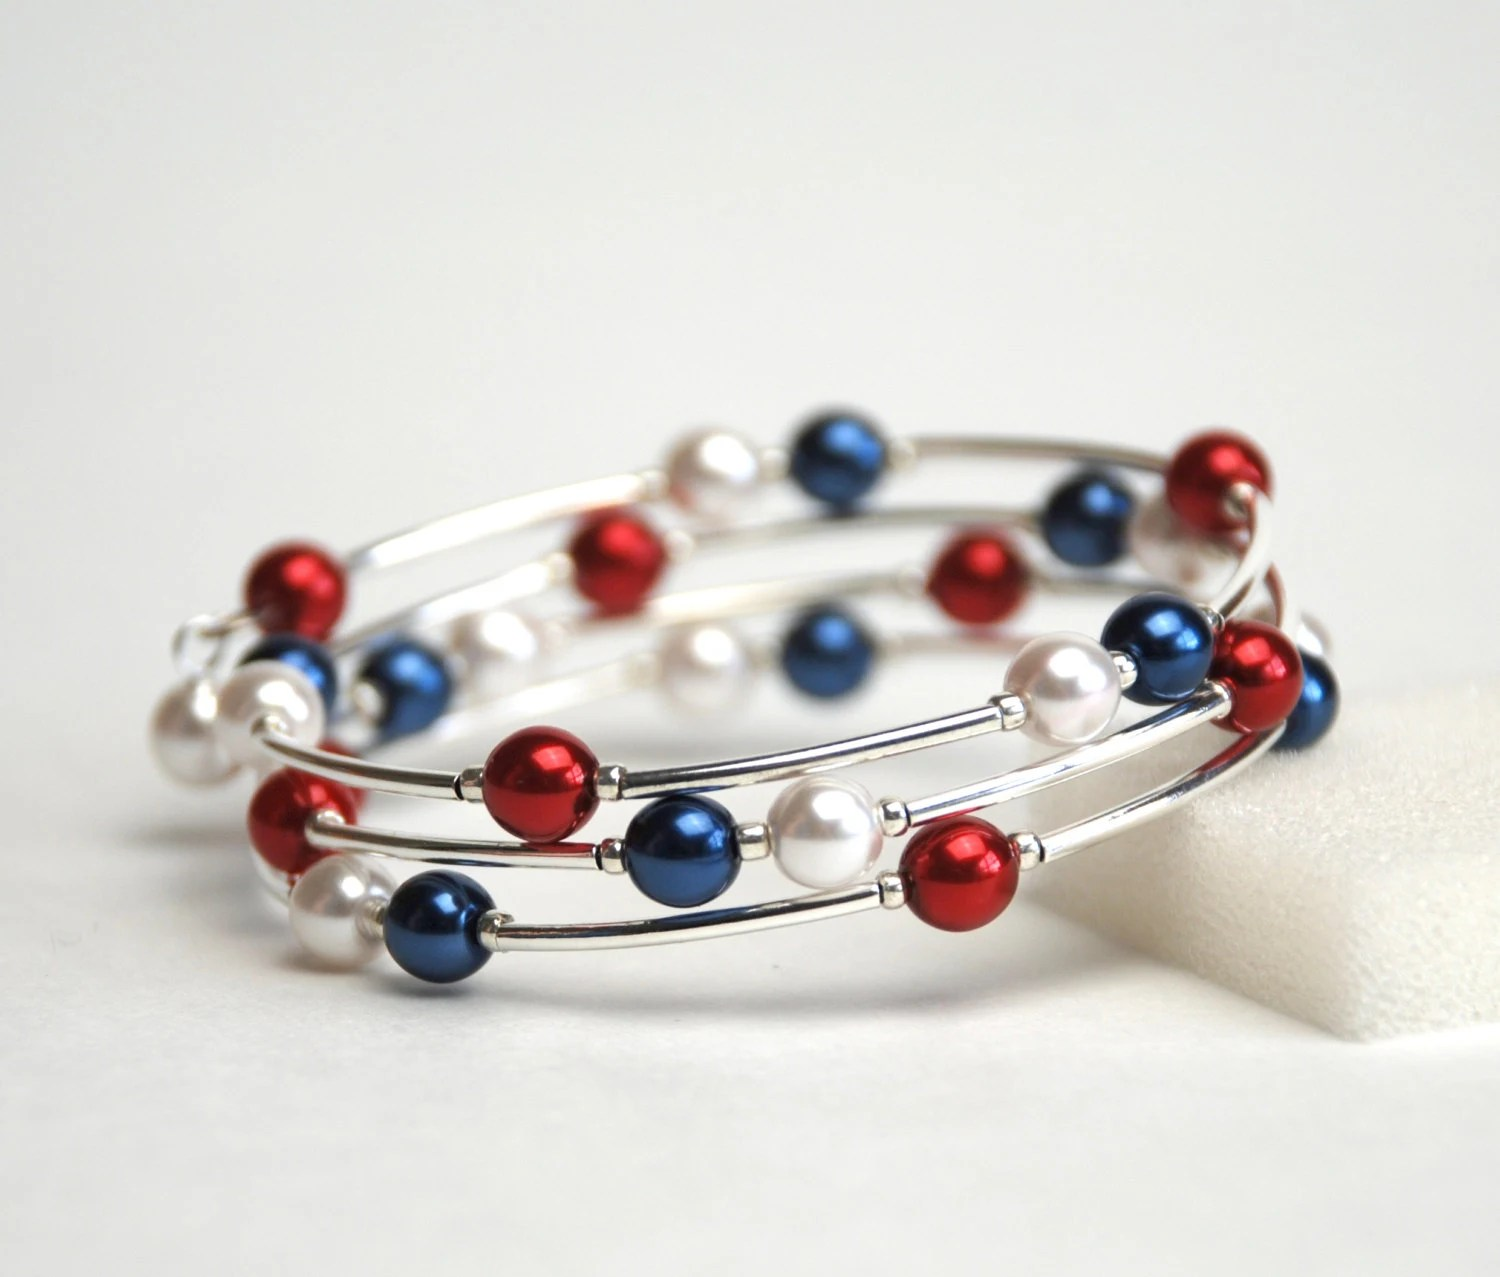 Red White and Blue Memory Wire Bracelet - Navy Blue White and Red Pearl Bracelet - Handmade Jewelry - lilicharms